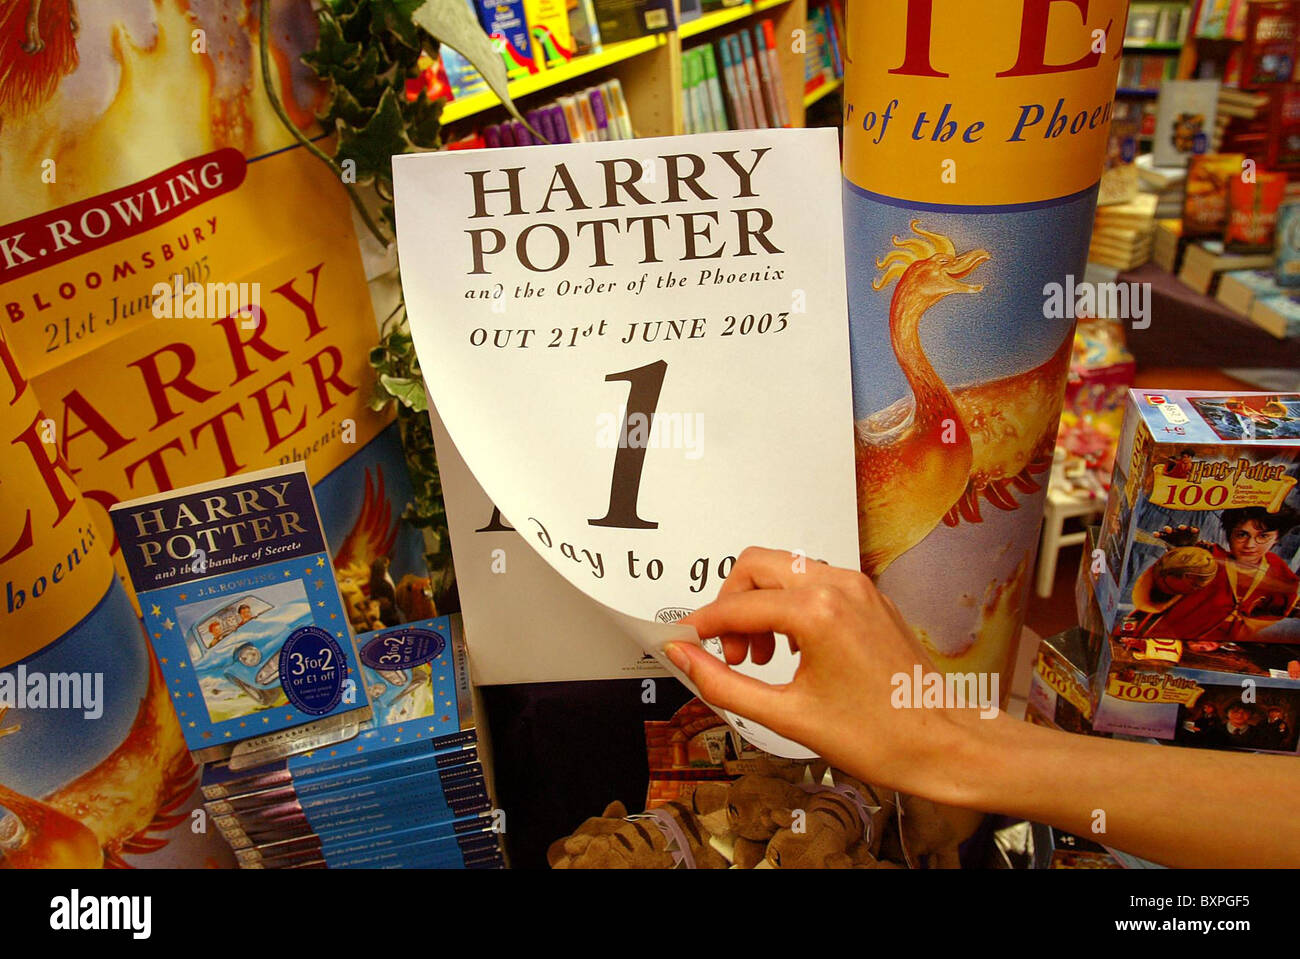 Harry Potter bookmarks. Picture by James Boardman. - Stock Image